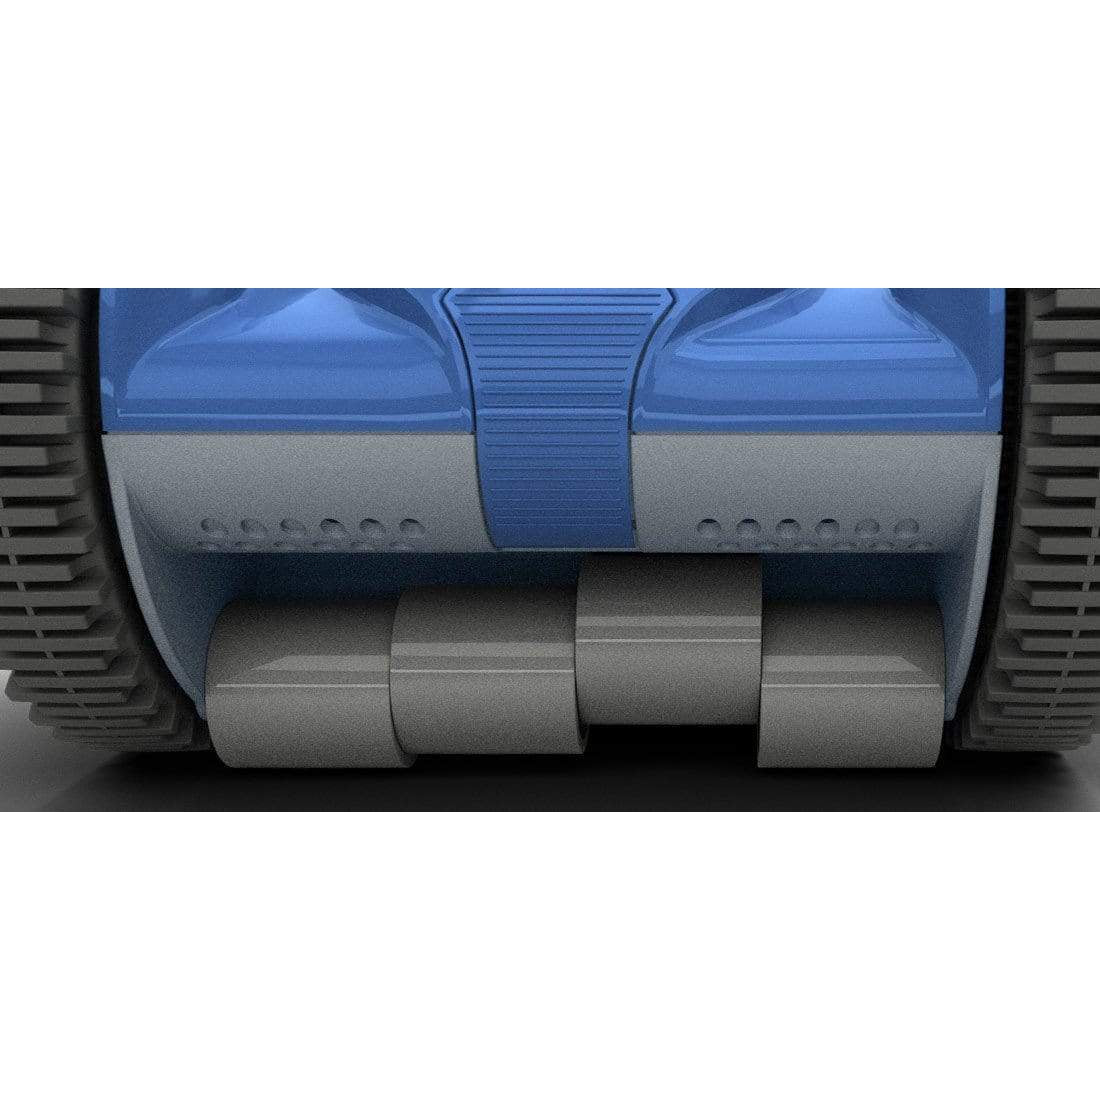 Pentair Rebel 2 Automatic Pool Cleaner-Suction Cleaners-Mr Pool Man